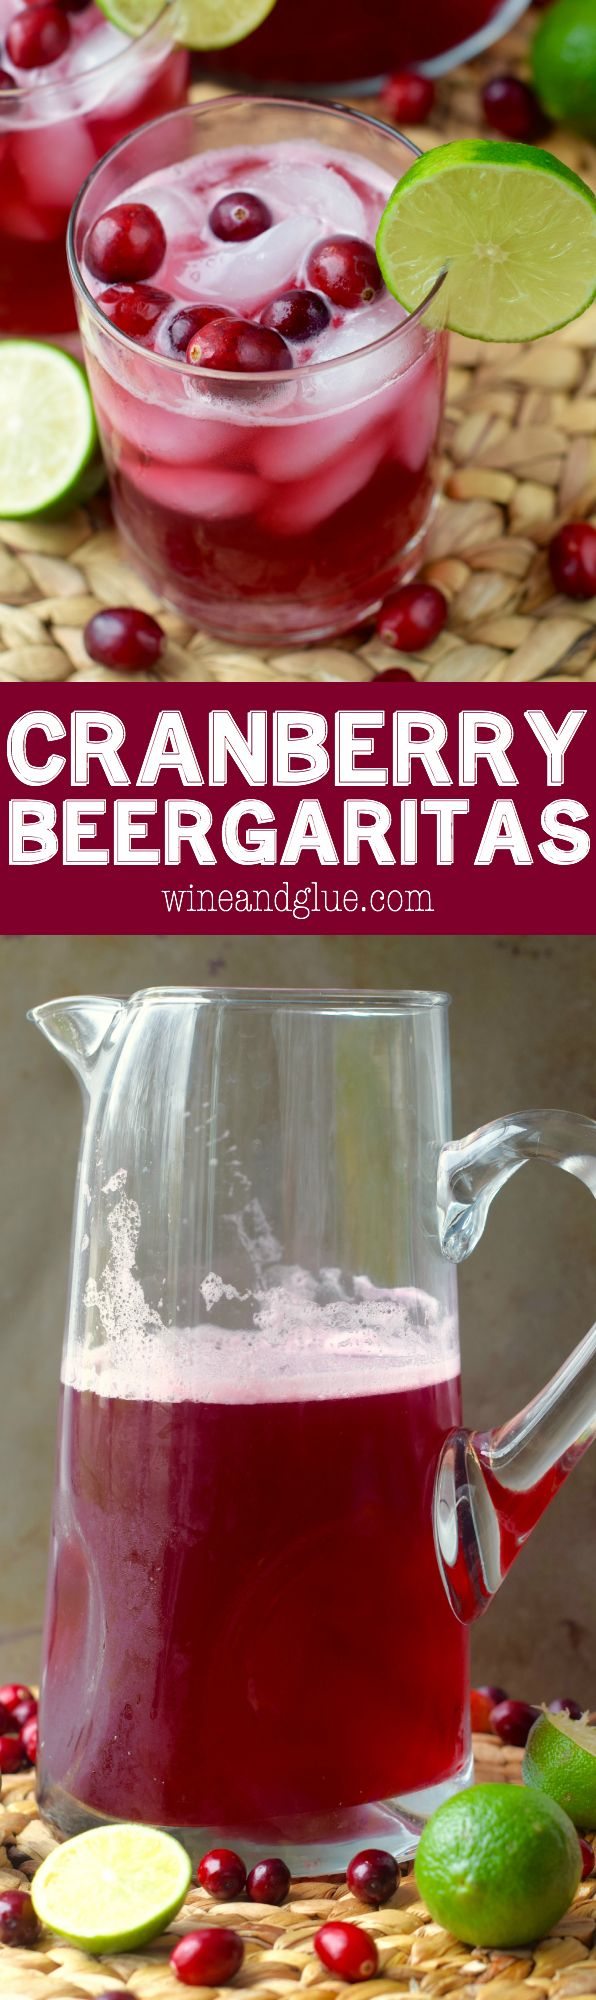 These Cranberry Beergaritas are just five simple ingredients but are the perfect addition to a party!: